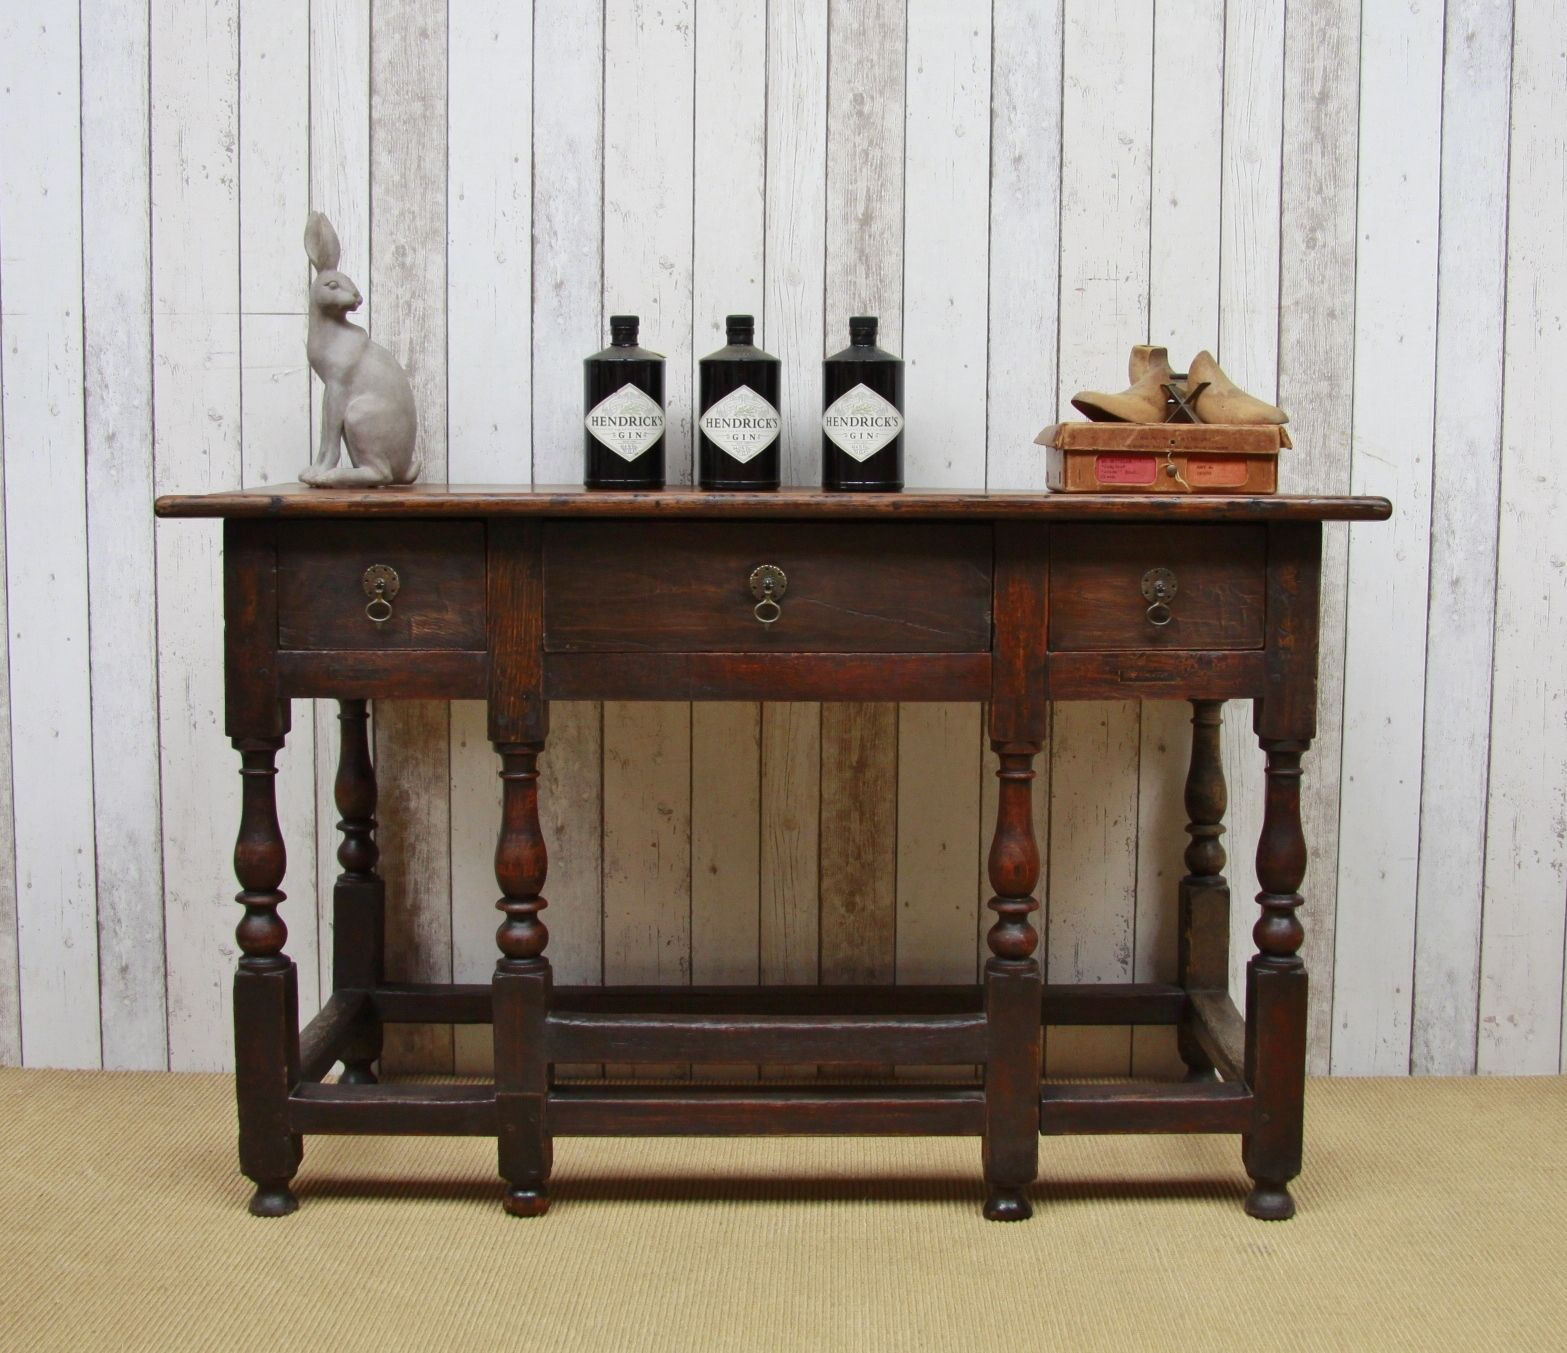 Very old English oak console table 19500 available to purchase